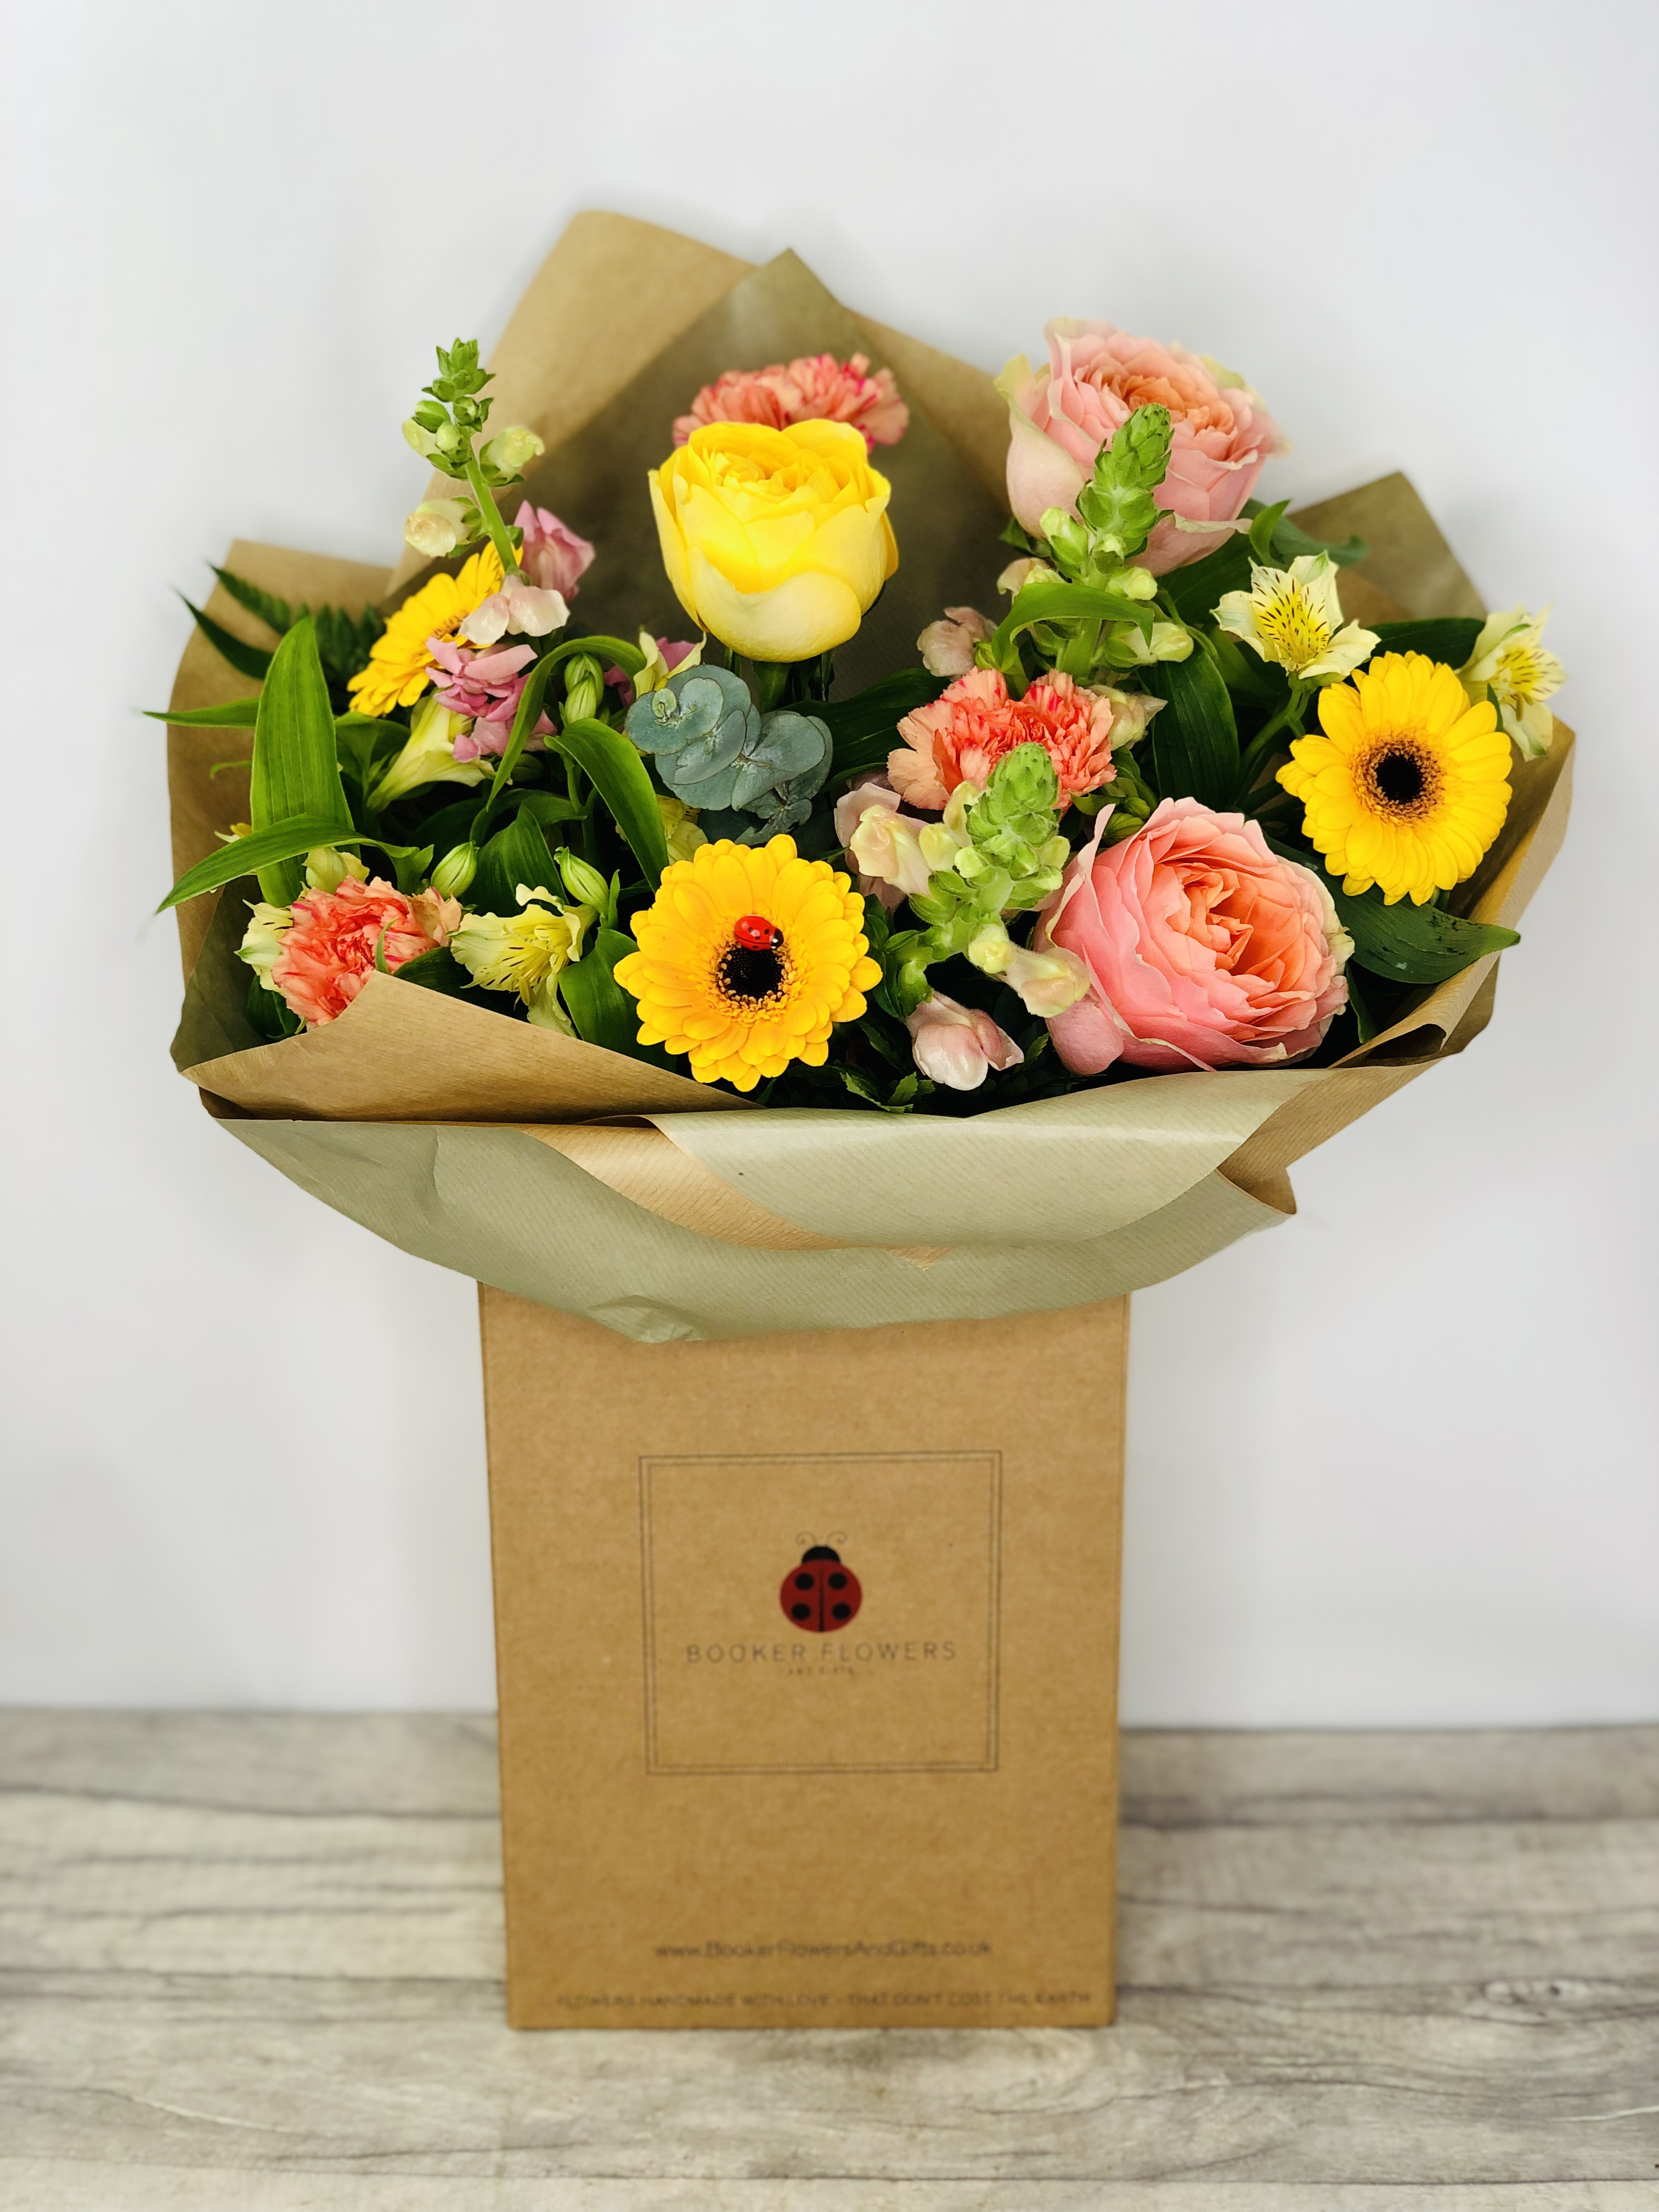 We sell a large range of Congratulations Flowers and Remember we offer Flower Delivery Liverpool. We can provide Congratulations Flowers for you in Liverpool - Merseyside and can organize Congratulations flower deliveries for you Nationwide.  We can provide Congratulations Bouquets and Congratulations Arrangements. Your Congratulations Flowers will be hand made by one of our professional Florists and delivered by hand with a smile. Remember Booker Flowers and Gifts for Congratulations Flowers delivered in Liverpool - Merseyside and beyond.  We offer Flower Delivery Liverpool and same day flower delivery and all our flowers hand arranged by our Florists are backed by our 7 day freshness guarantee